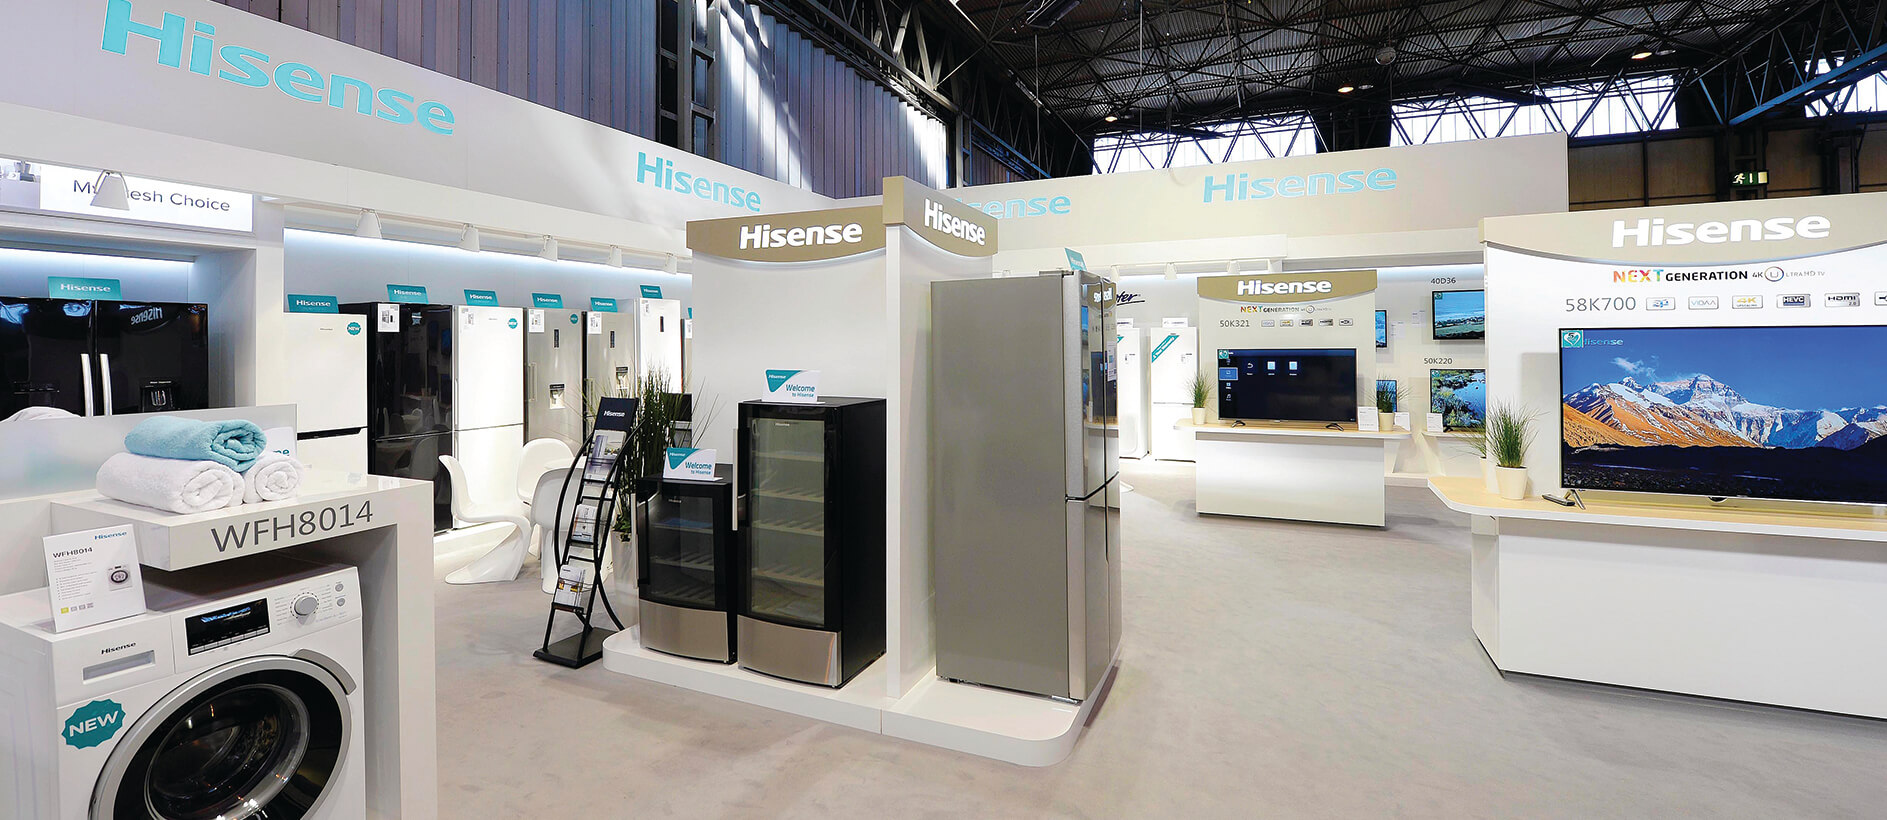 Hisense stand by Exhibit 3Sixty